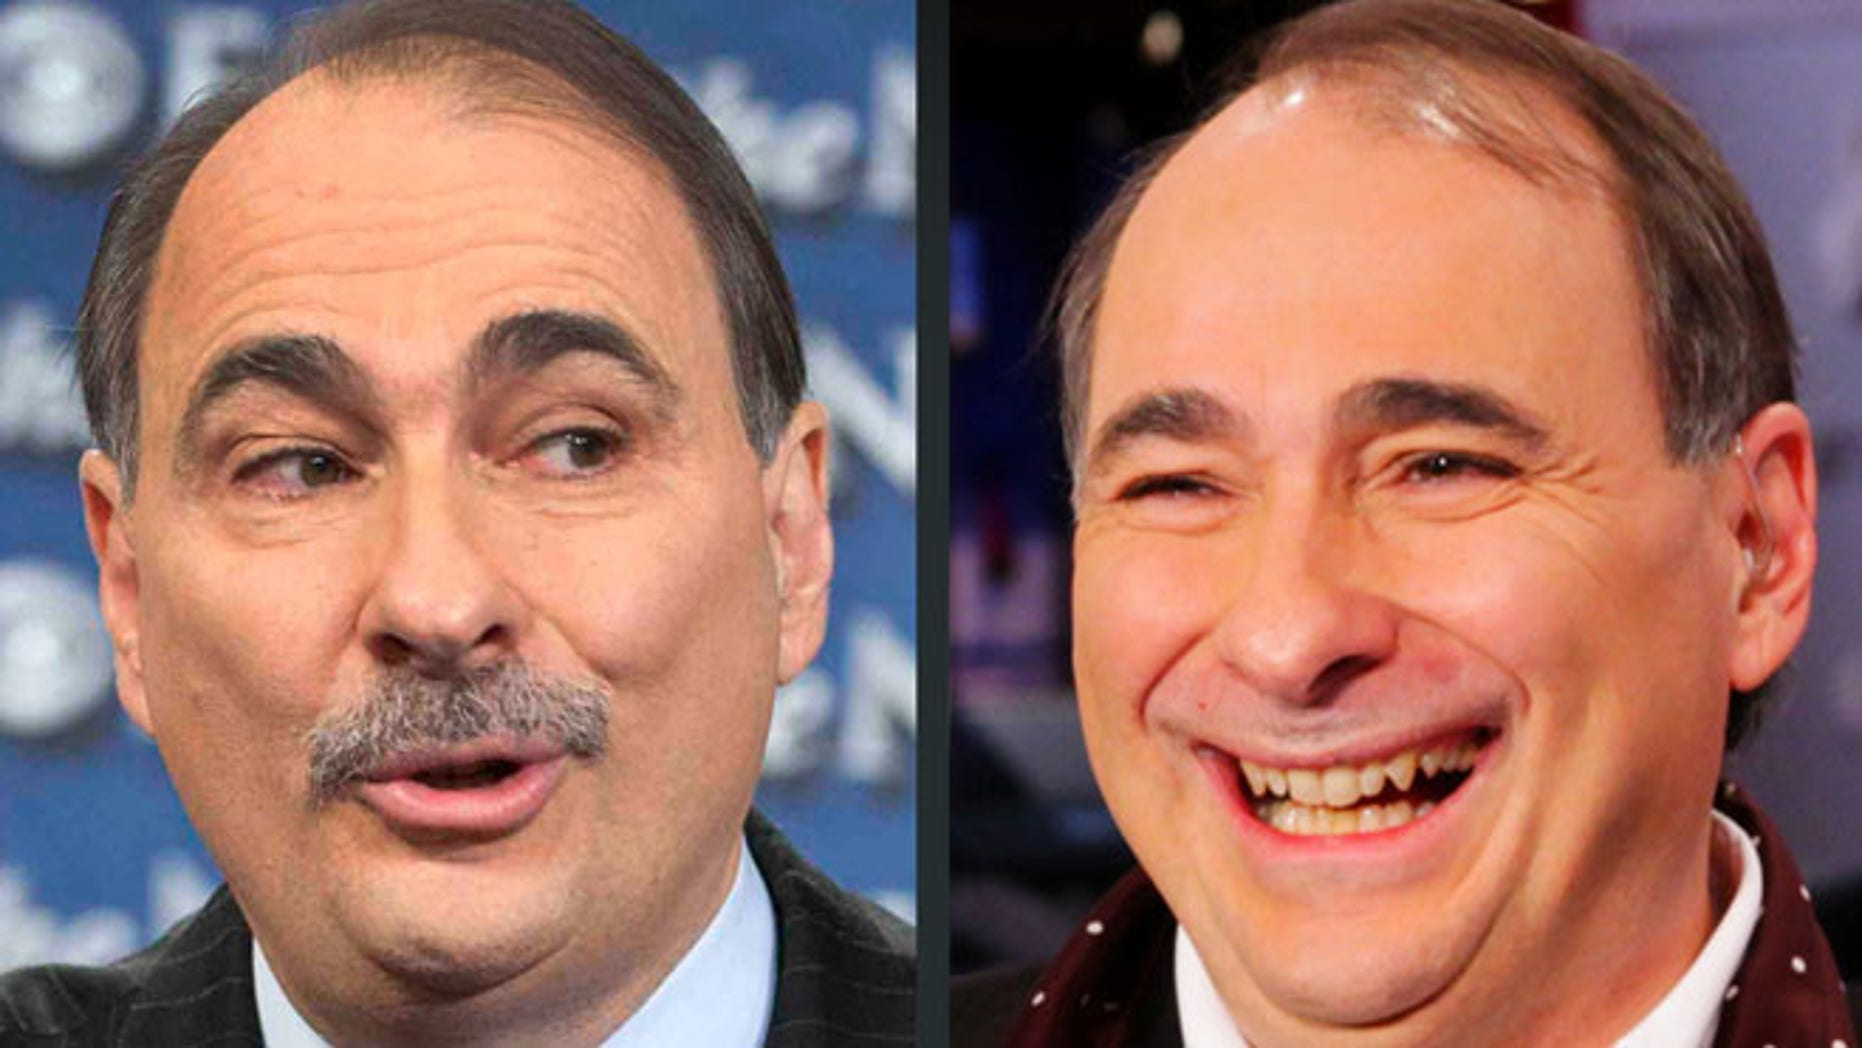 Before and after: David Axelrod, adviser to the Obama campaign